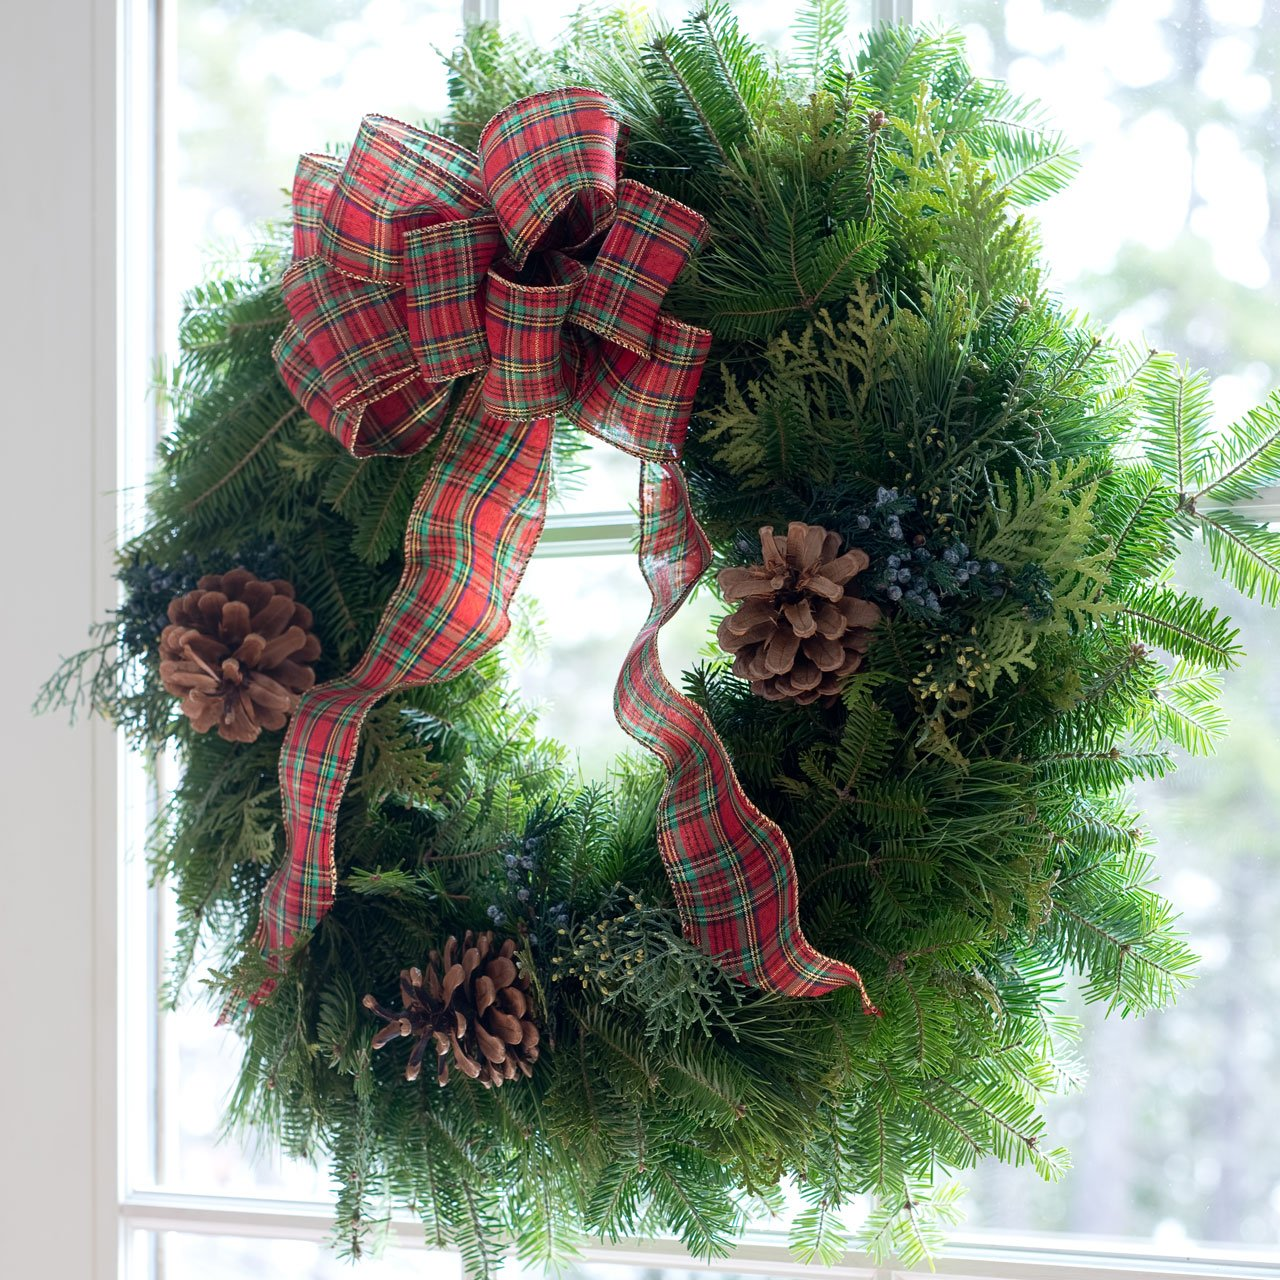 Fresh Christmas Wreath Front Door | Country Plaid Tartan Bow | Enjoy Scent of Real Balsam Pine ~ Evergreens Lasts All Season Outdoor ~ Arrives in a Beautiful Red Gift Box | Perfect Present for Xmas